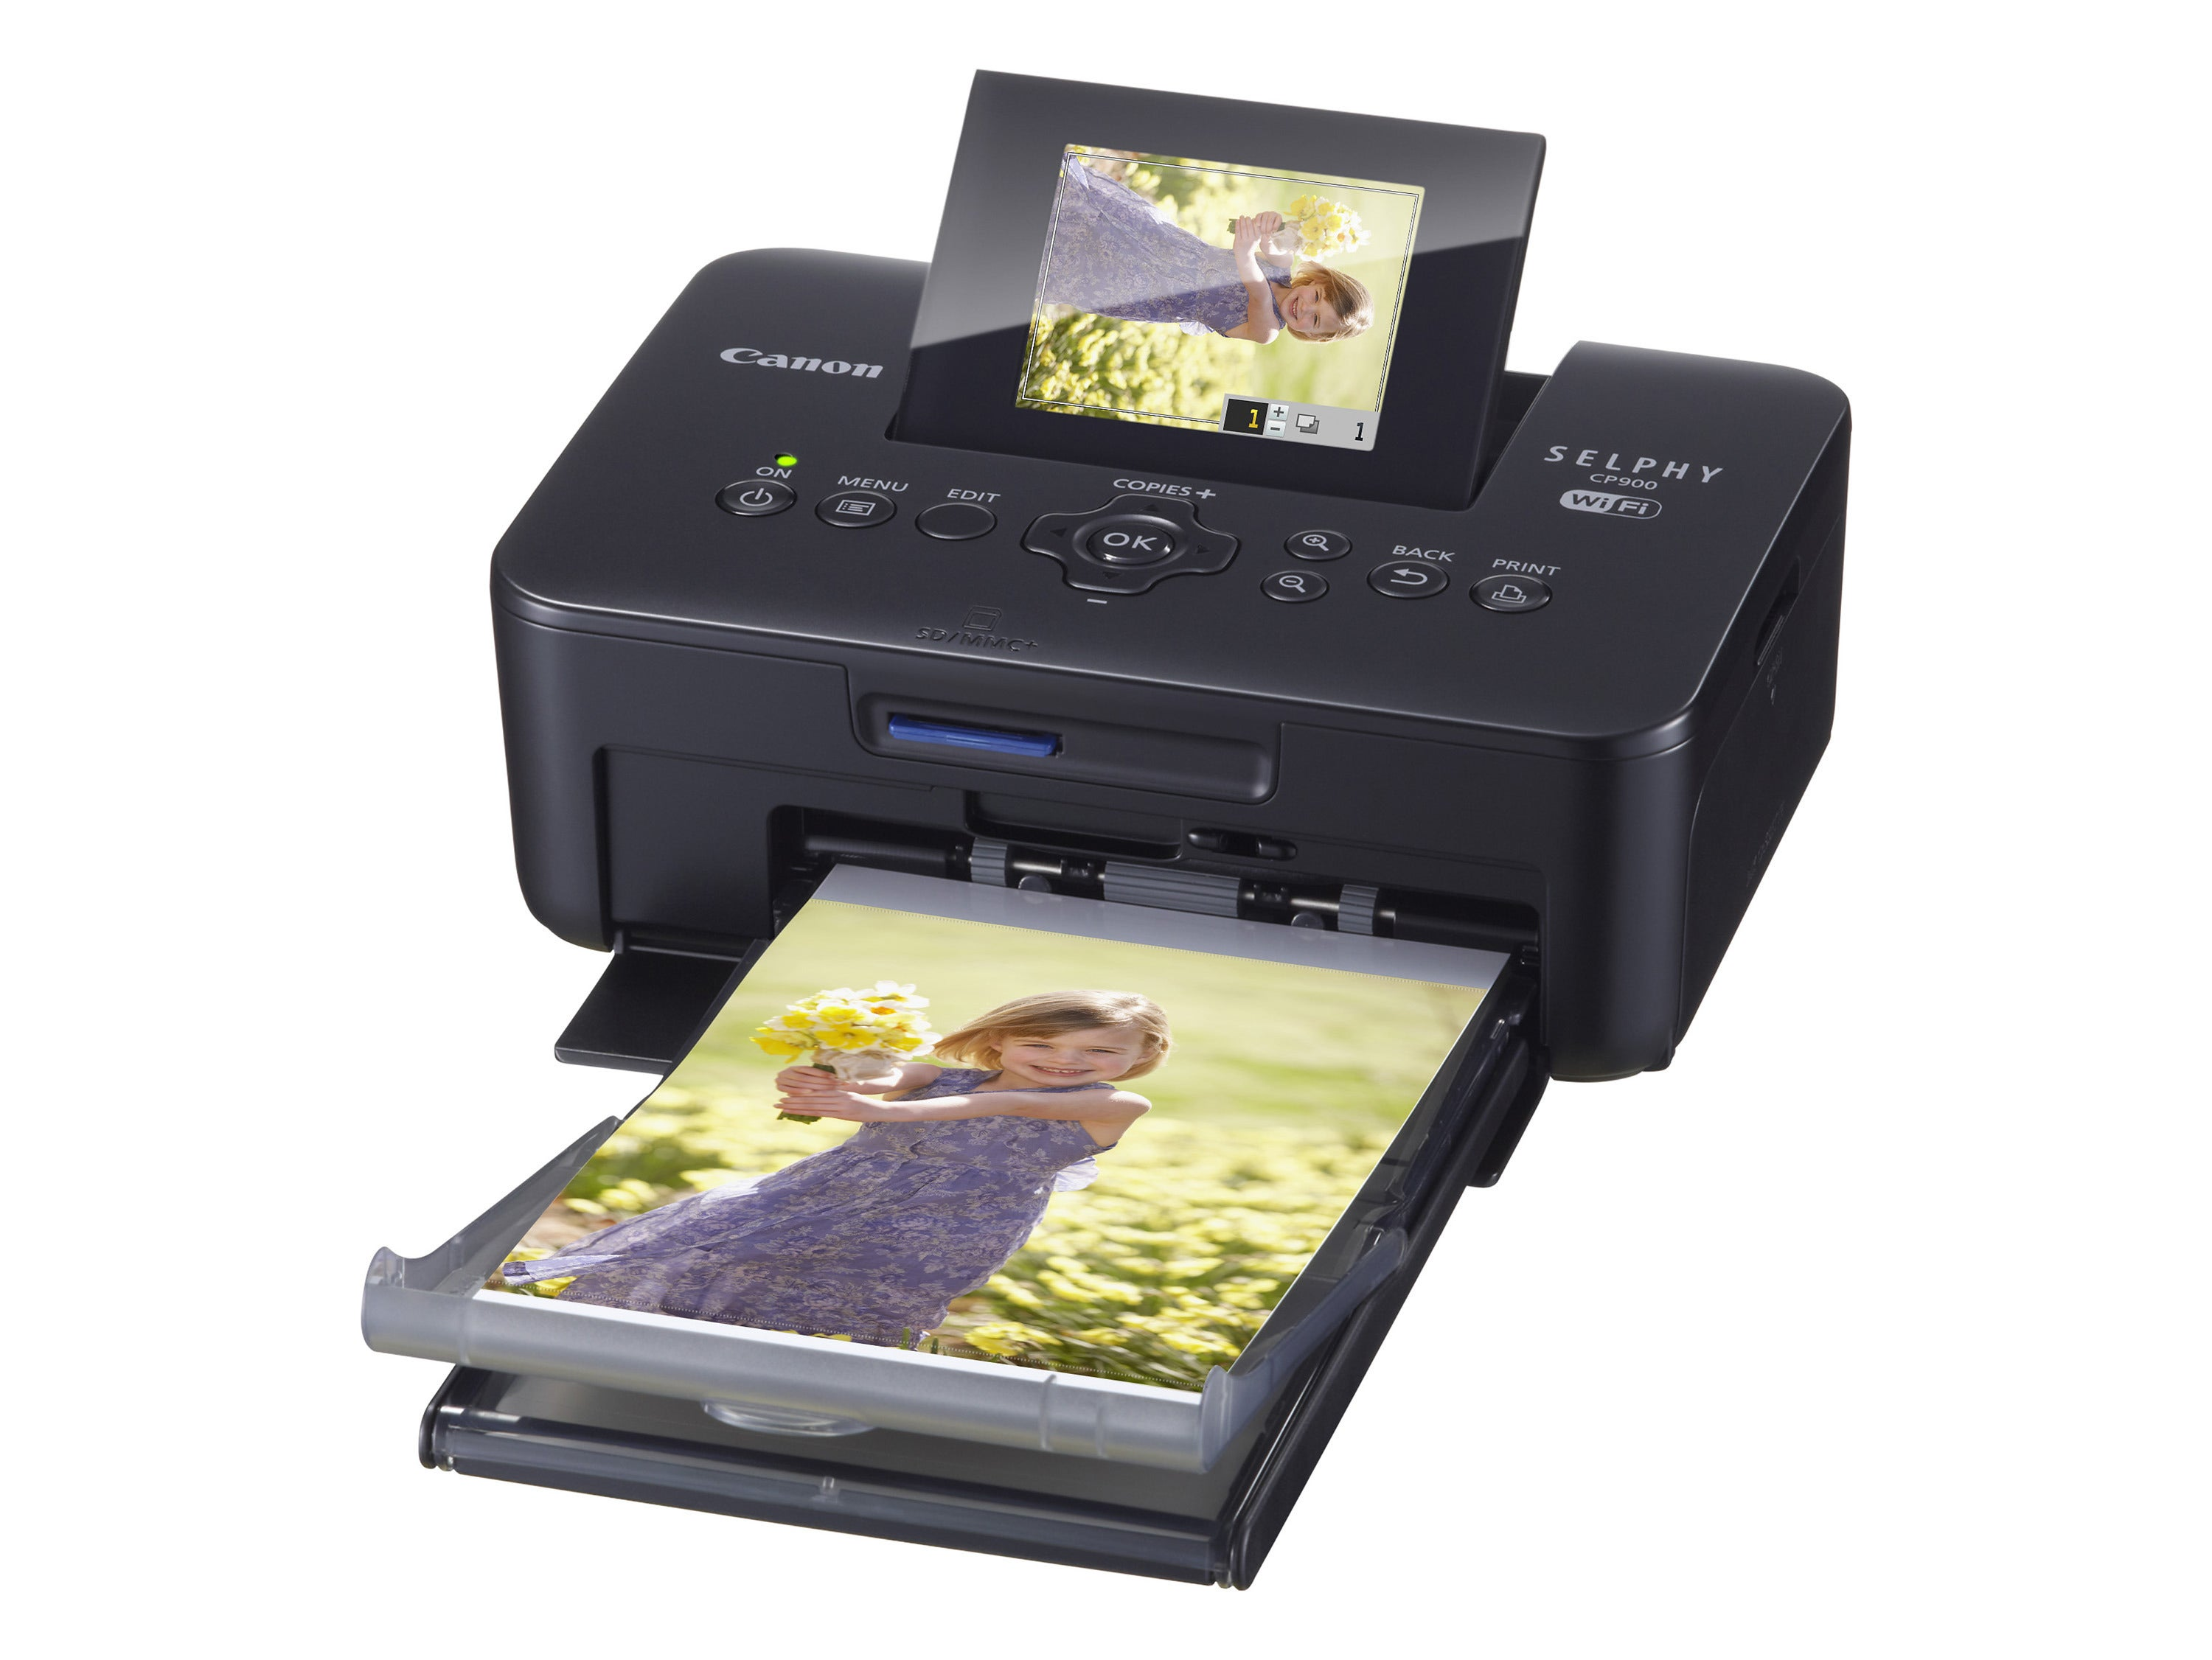 canon releases new photo printers with software imaging. Black Bedroom Furniture Sets. Home Design Ideas